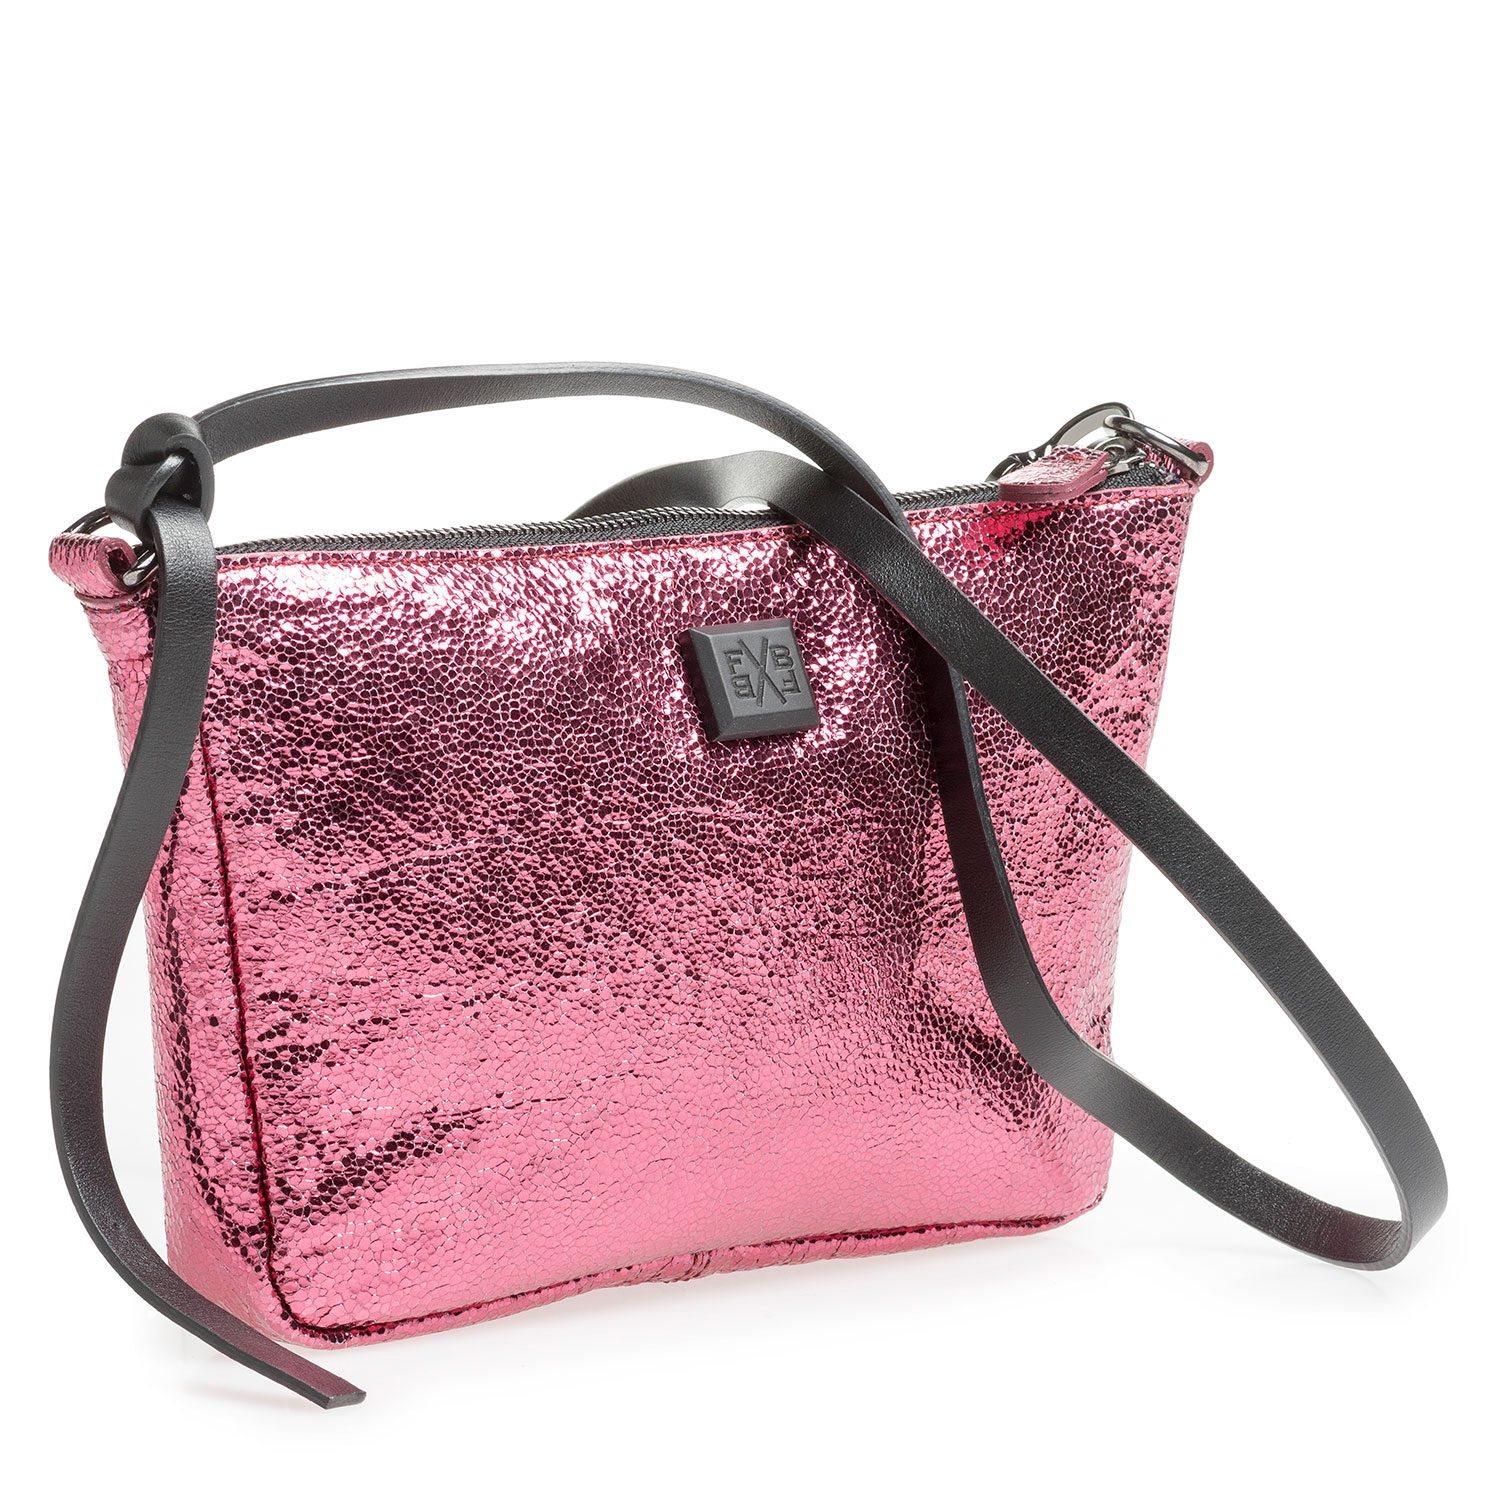 89019/12 - Pink leather bag with metallic print